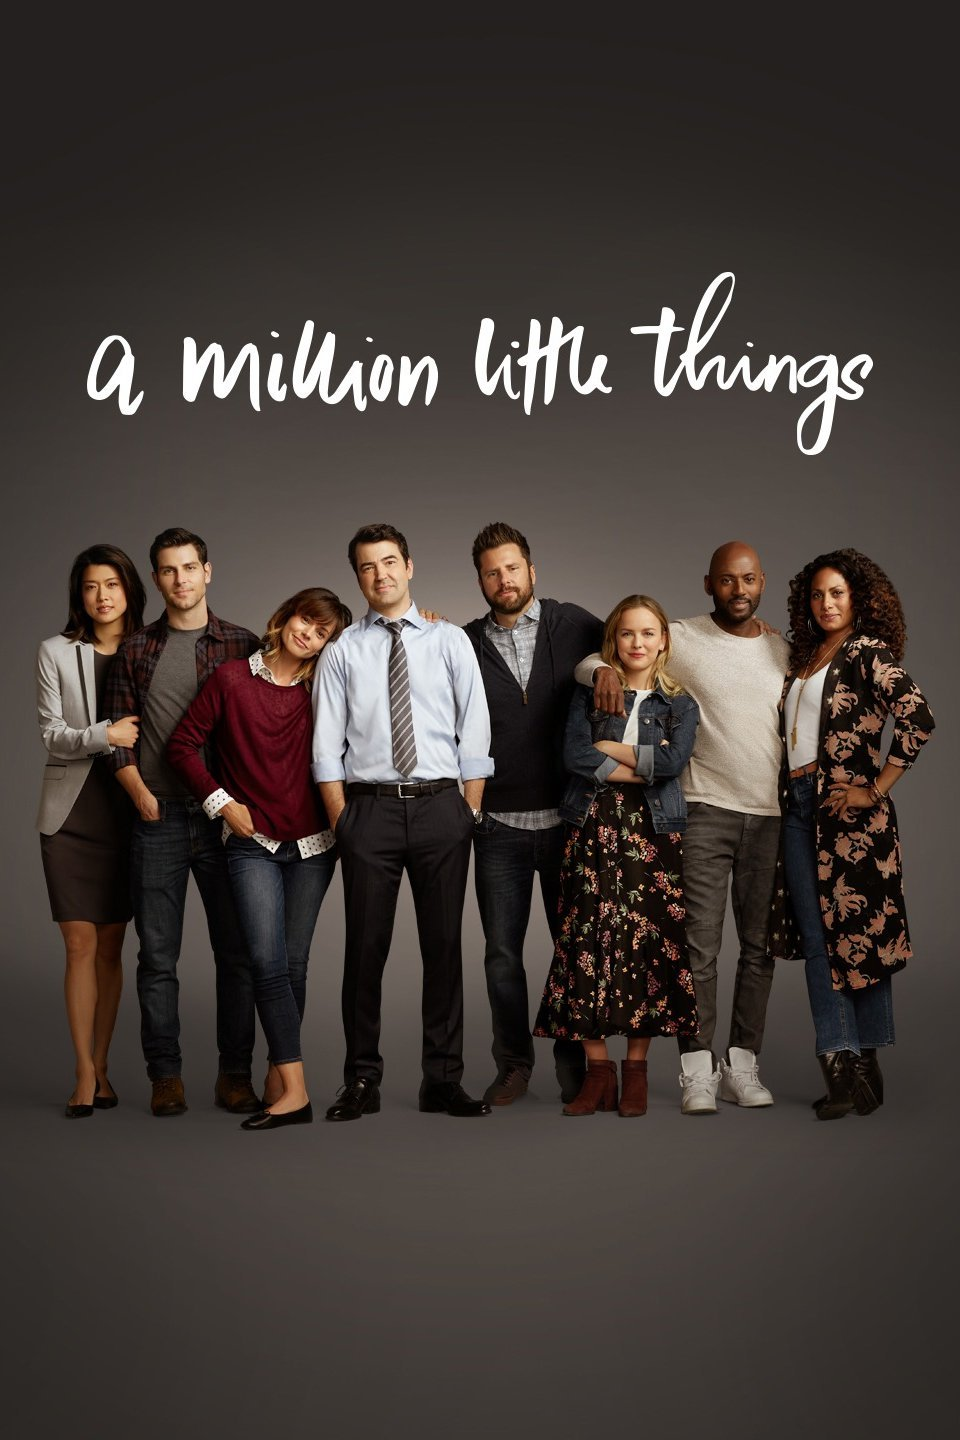 A Million Little Things Season 3 Episode 1 - hit & run